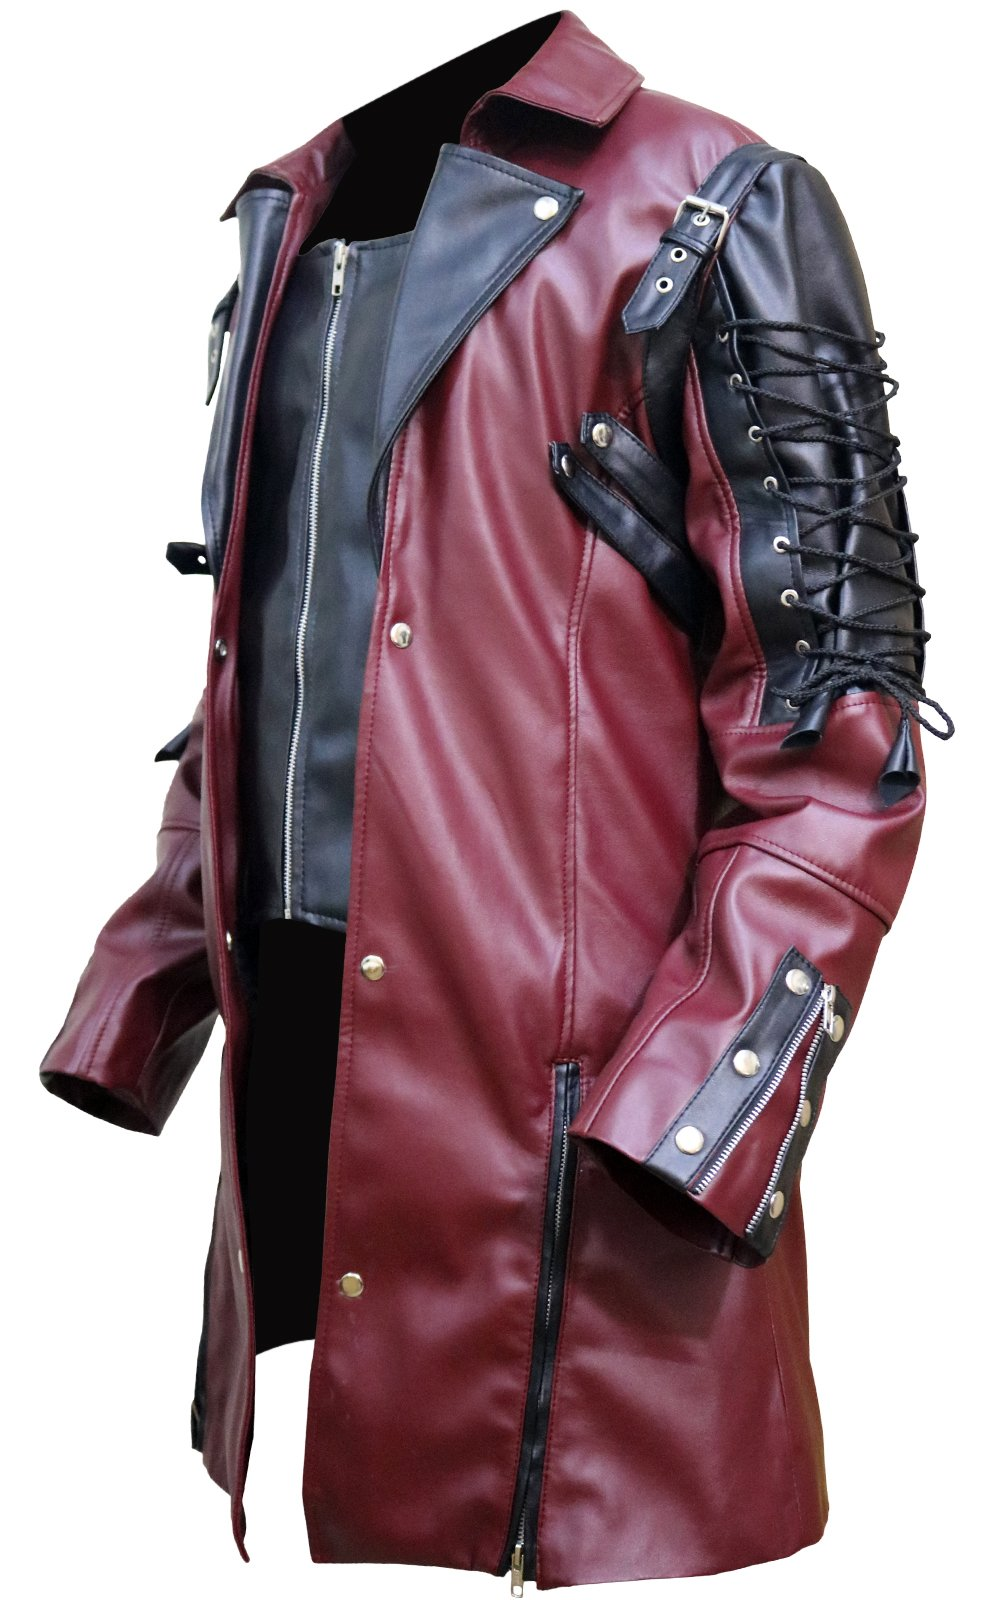 FaddyRox Steampunk Gothic Men Faux Leather Maroon & Black Coat Jacket, XXS - 3XL 4